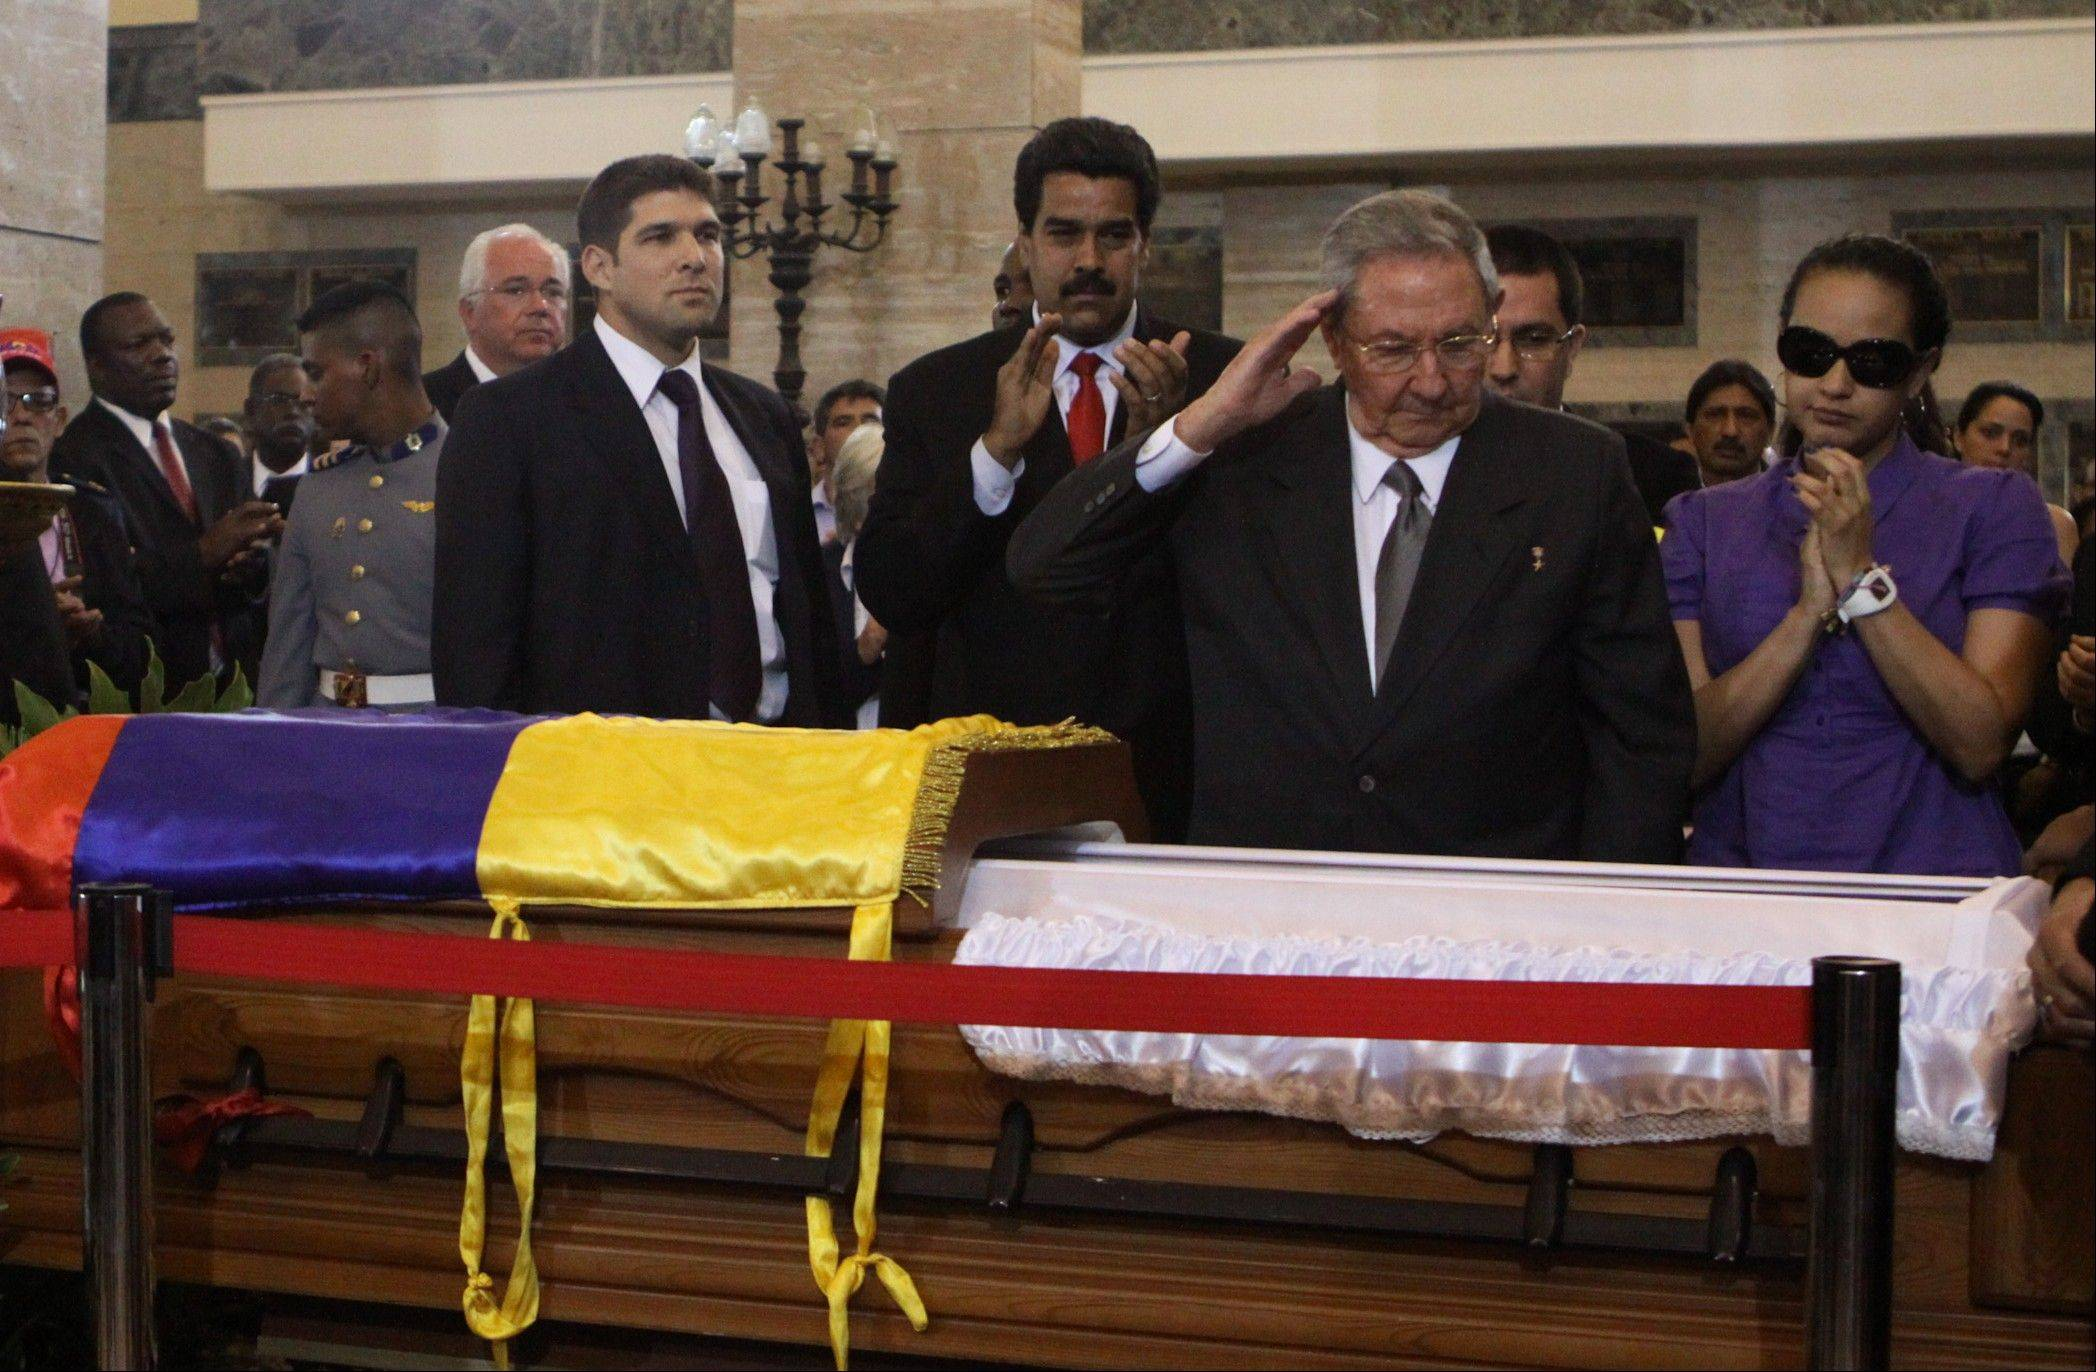 Cuba's President Raul Castro salutes as he stands next to the coffin containing the body of Venezuela's late President Hugo Chavez. A state funeral for Chavez attended by some 33 heads of government is scheduled to begin Friday morning. At right is Chavez's daughter Rosa Virginia Chavez and center is Vice-President Nicolas Maduro.